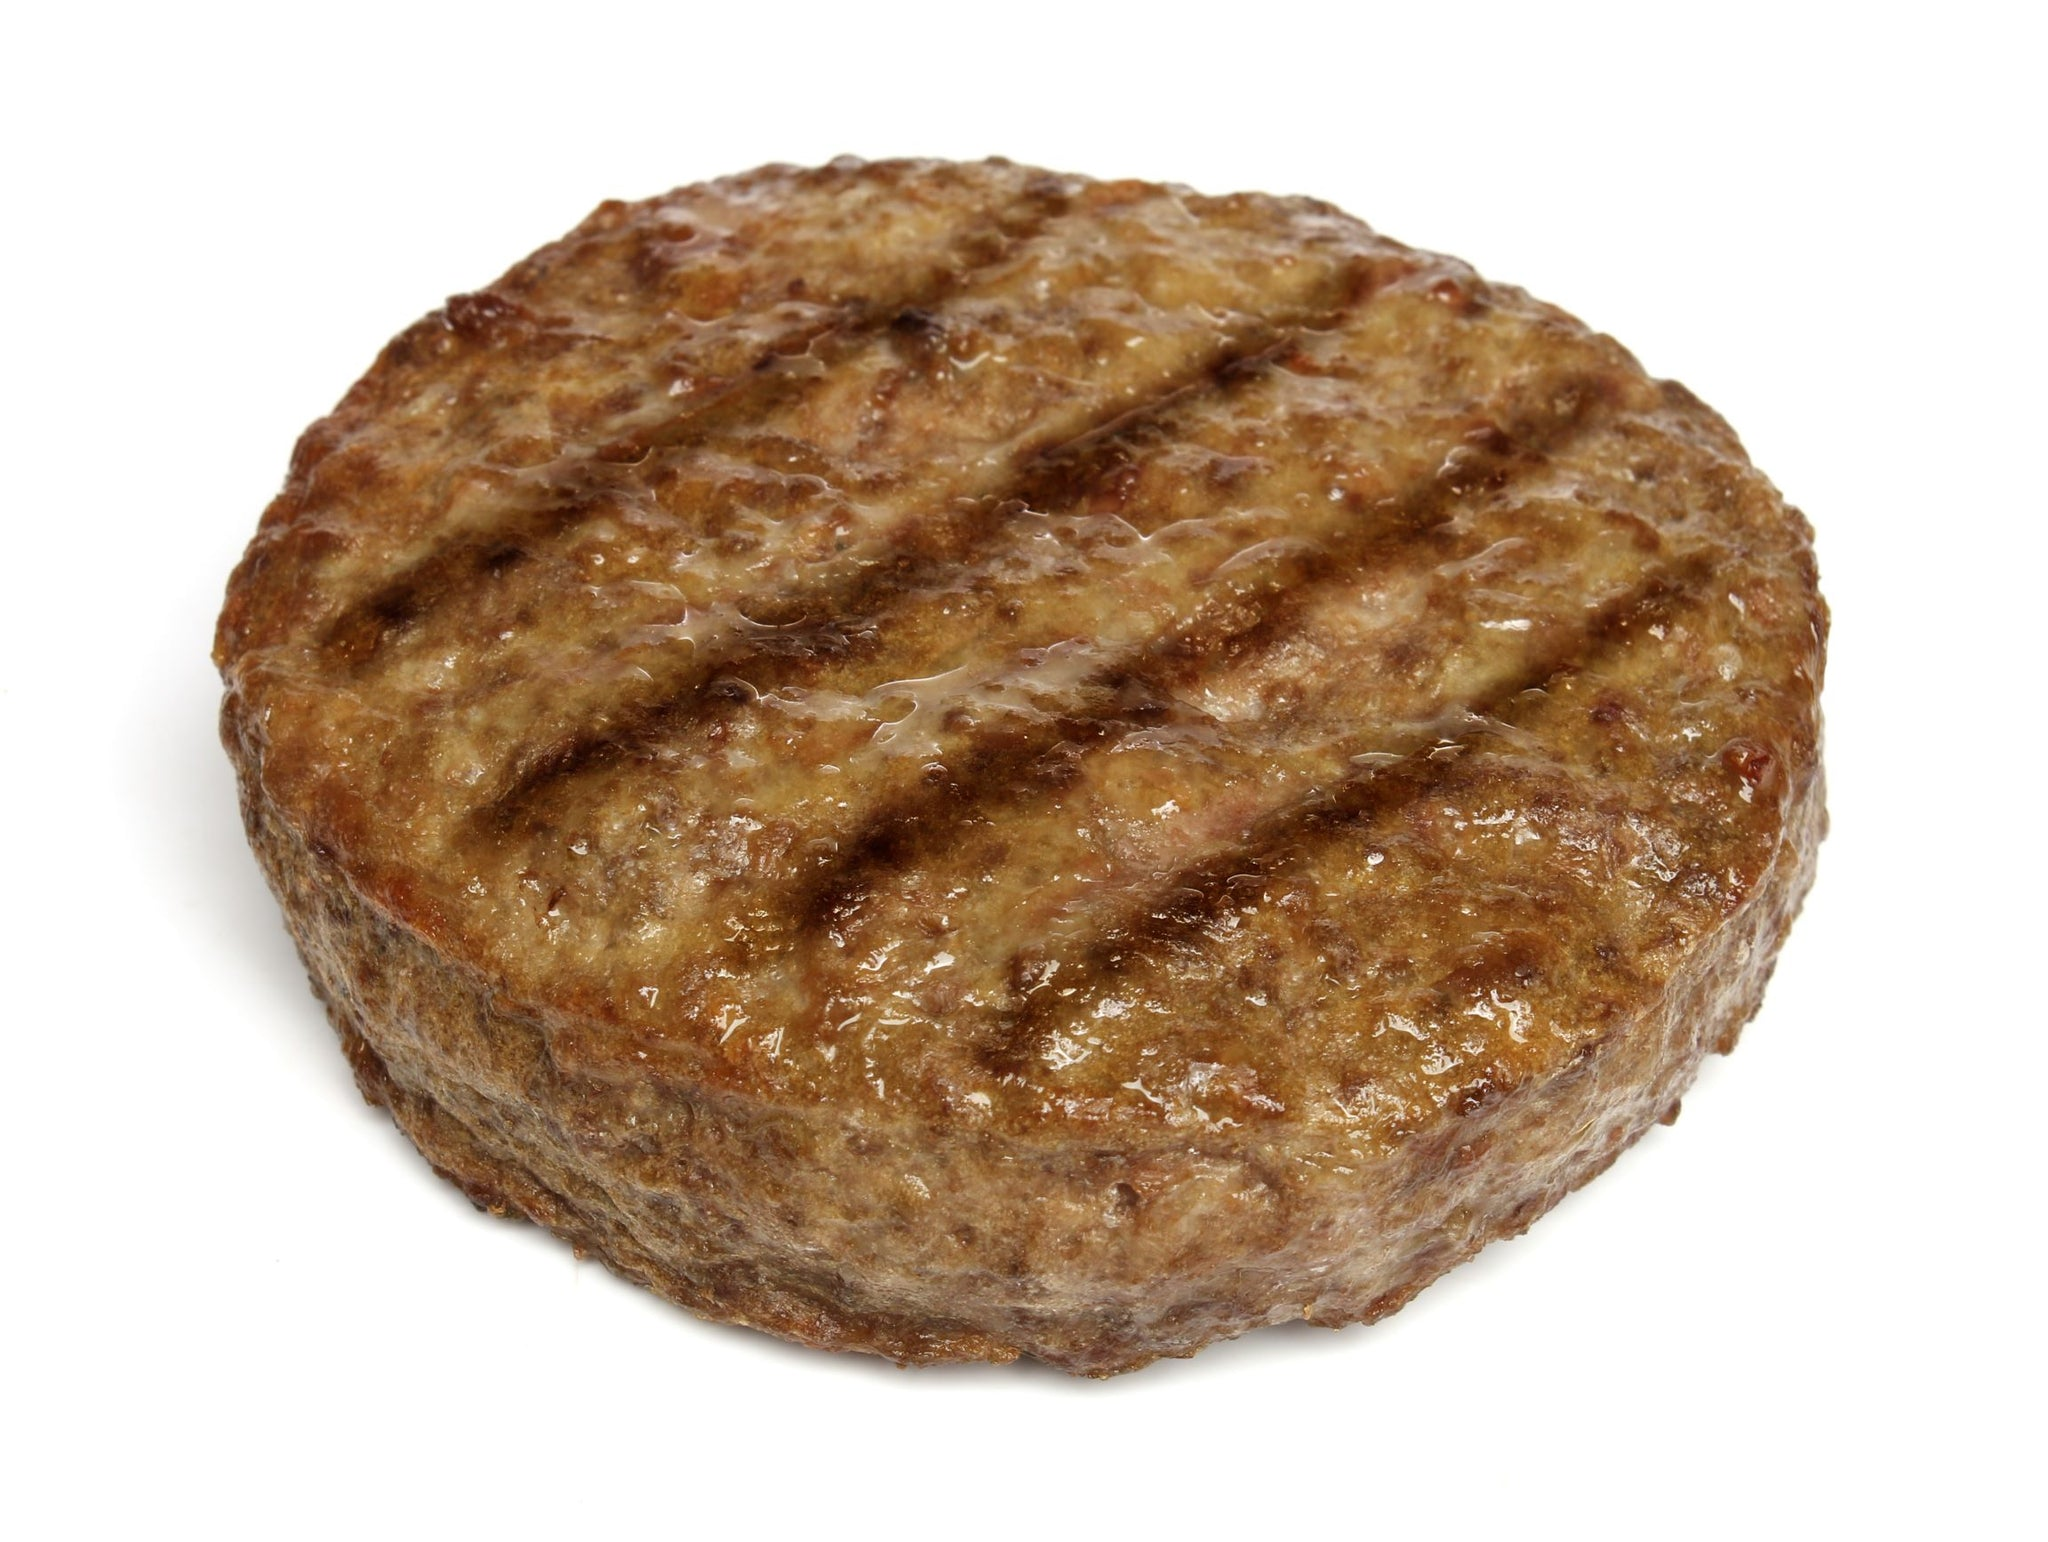 Fire River Farms Frozen Homestyle Beef Burger 5.3 oz - 60 Pack [$1.99/each]